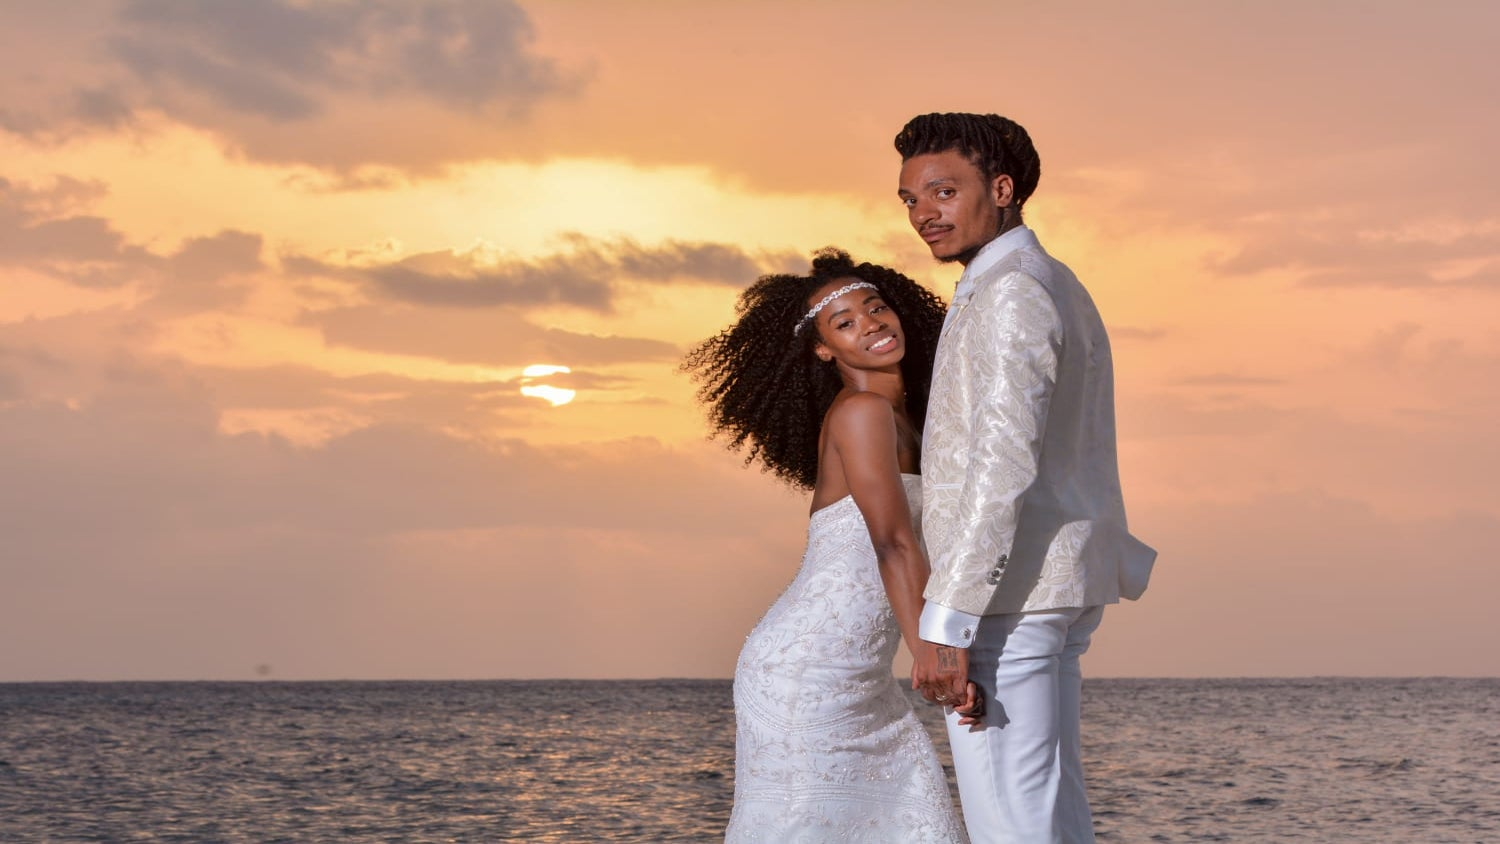 On The Run II Tour Dancers Say I Do In Jamaica! Friendship Brought Them Together, But Their Faith Made Them One